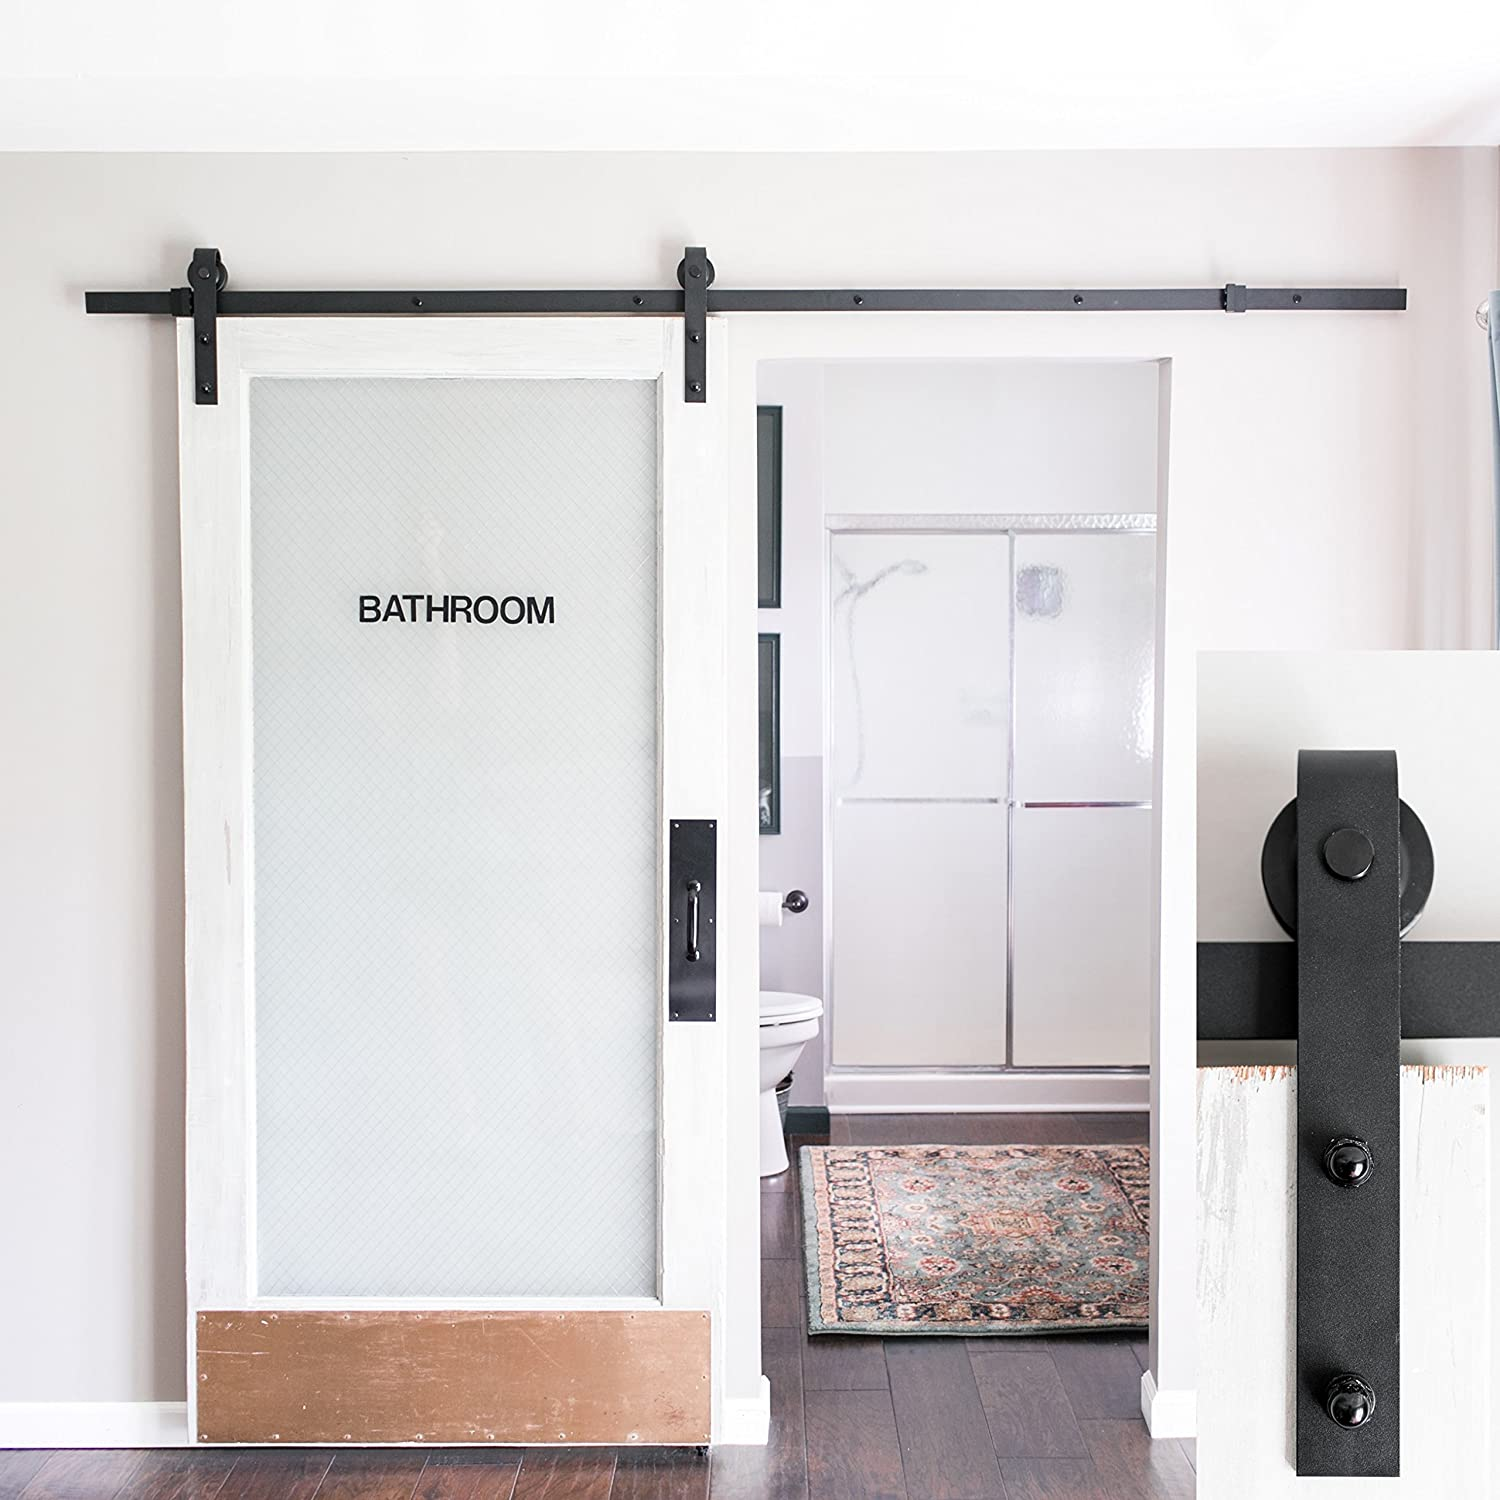 One piece garage door hardware - Amazon Com 8 Foot Heavy Duty Sliding Barn Door Hardware Kit Black Includes Easy Step By Step Installation Video Superior Quality One Piece Rail